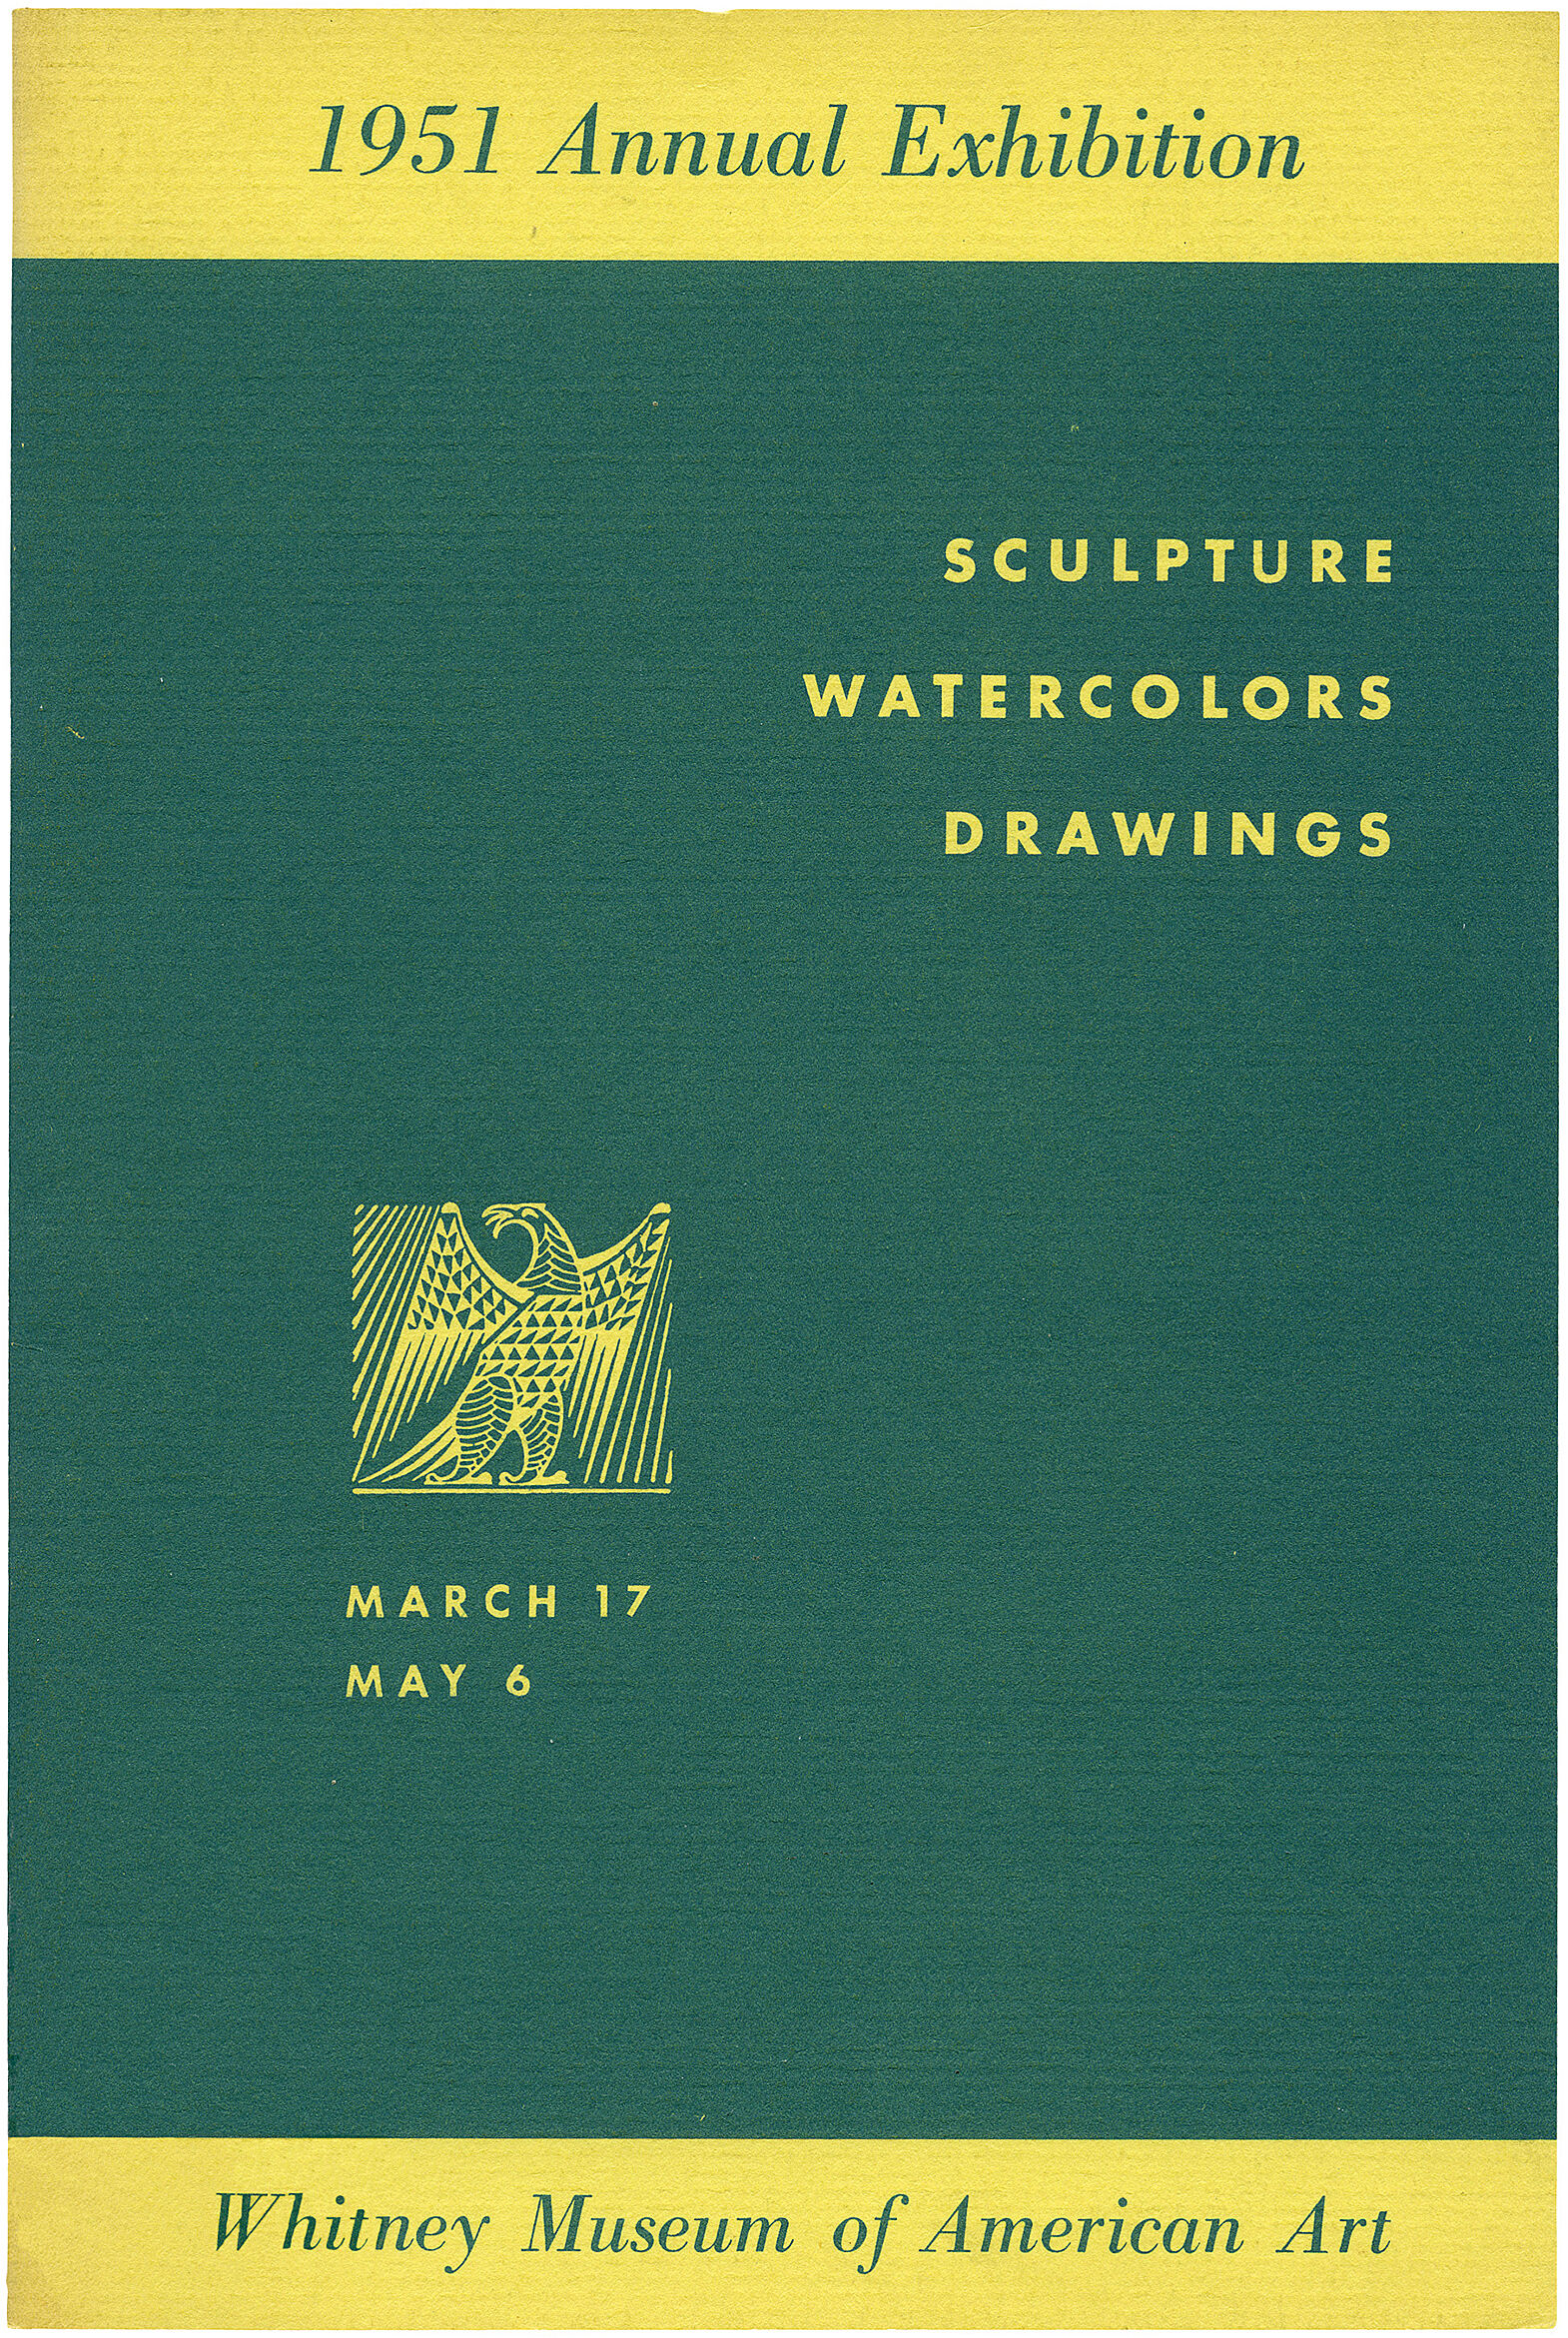 Cover for 1951 Annual Exhibition of Contemporary American Sculpture, Watercolors and Drawings catalogue